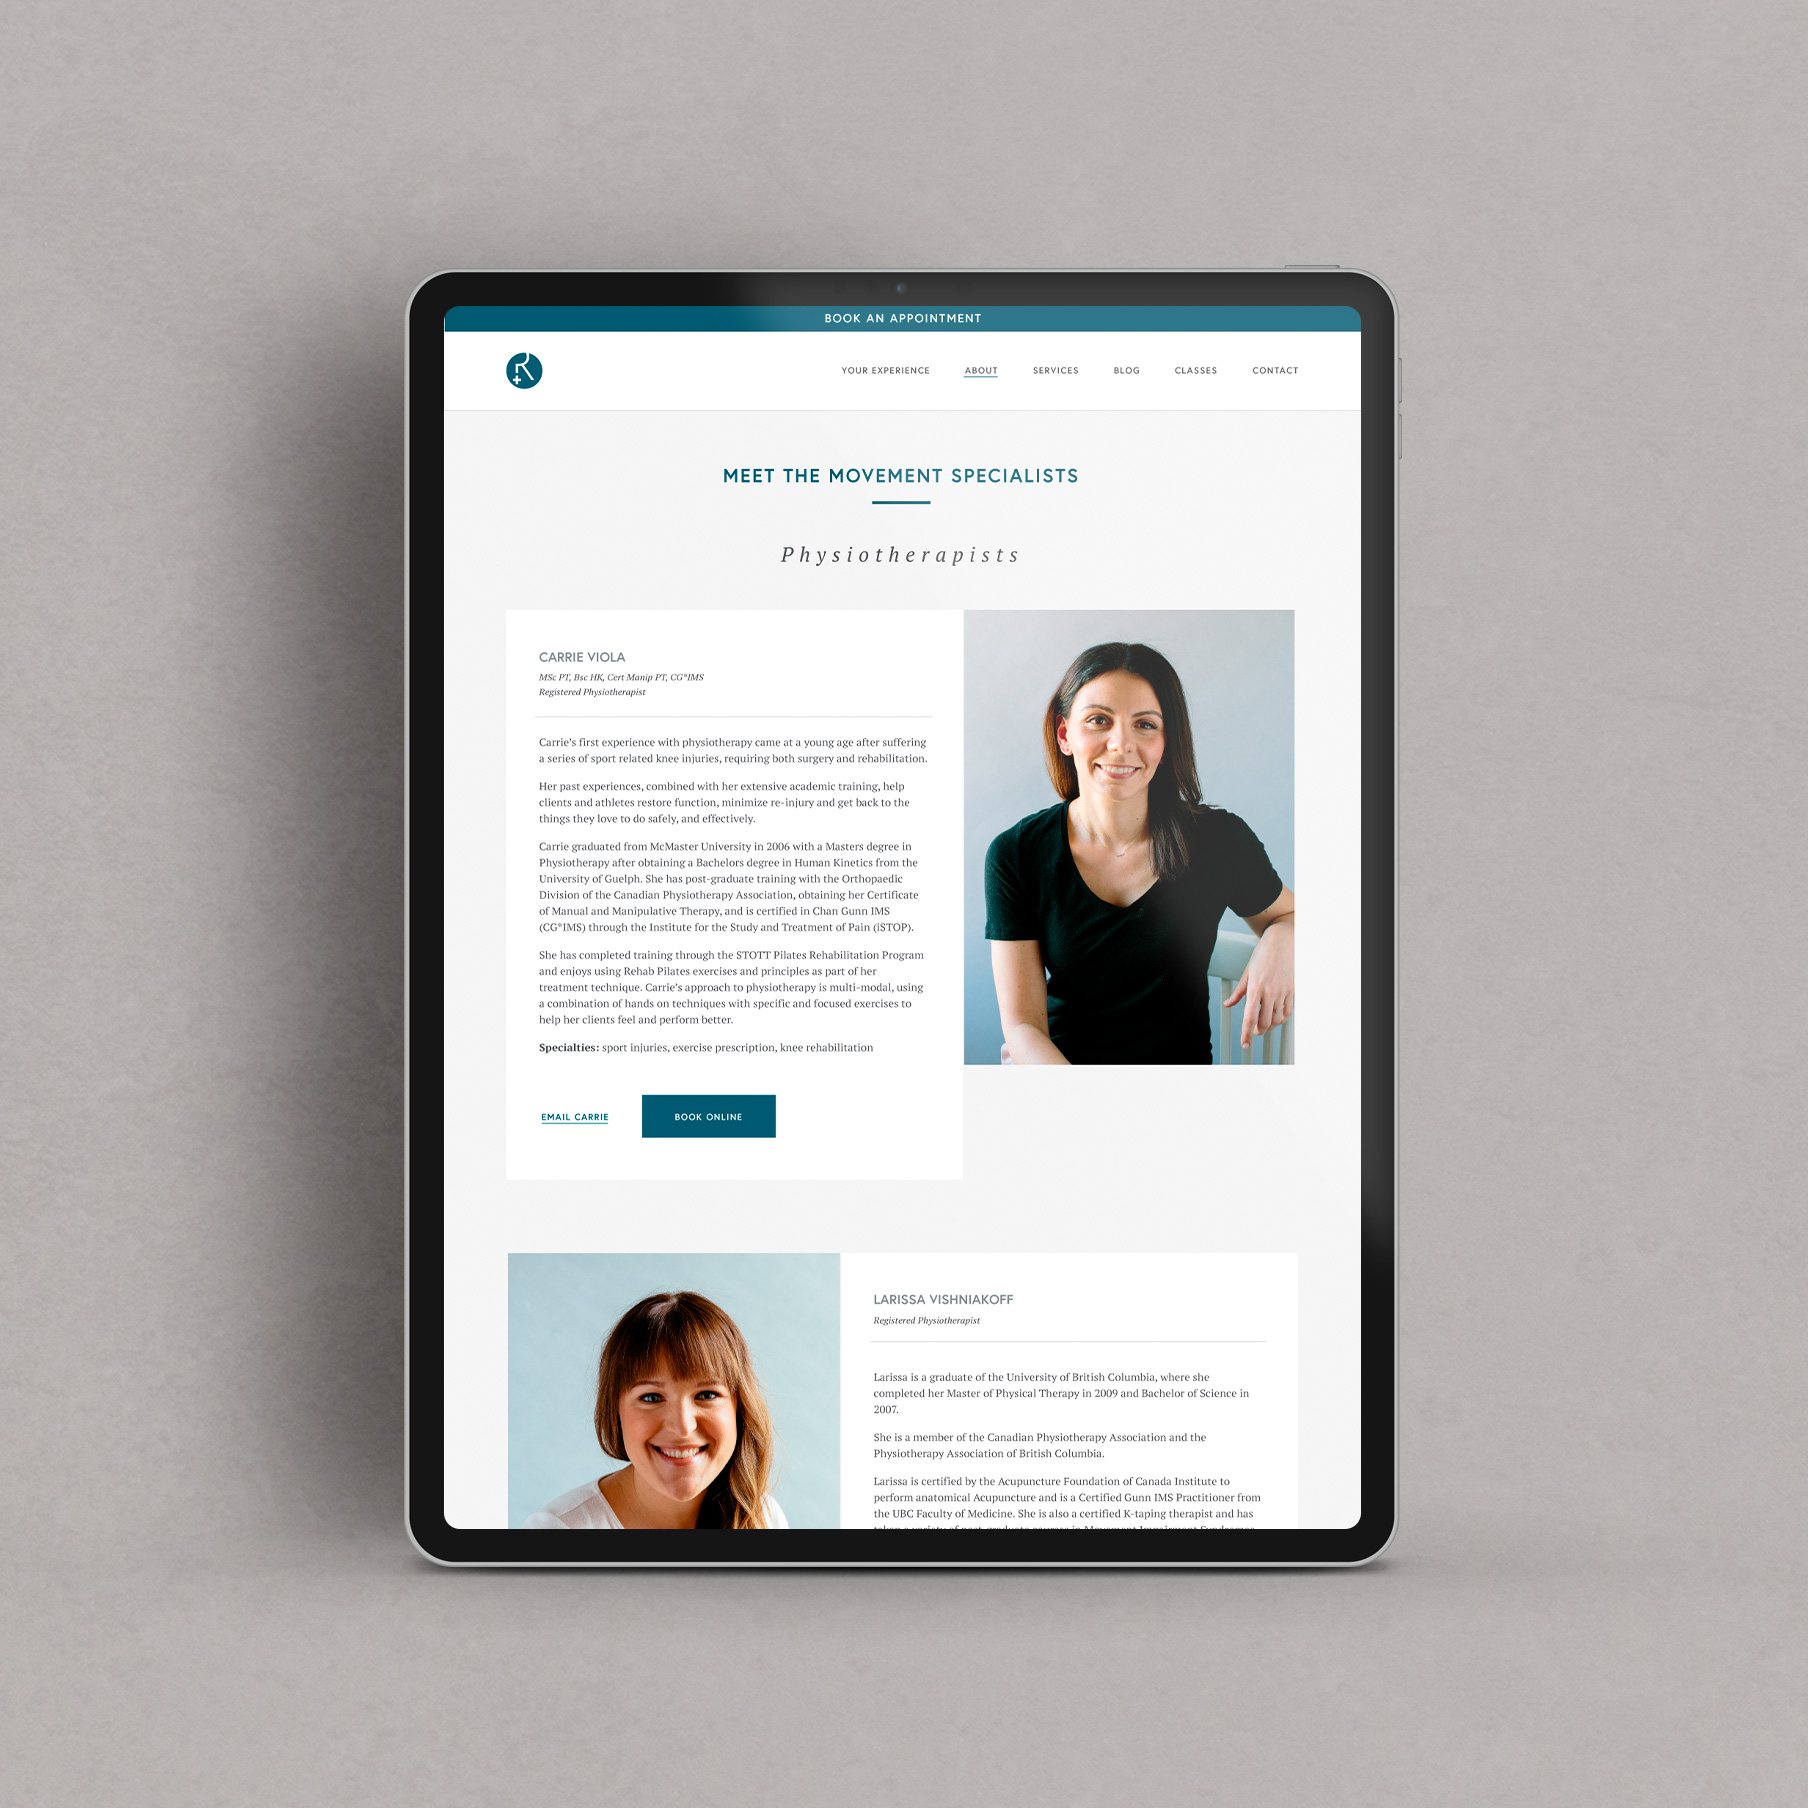 Reformotiv Physio + Pilates website design by Flipside Creative.